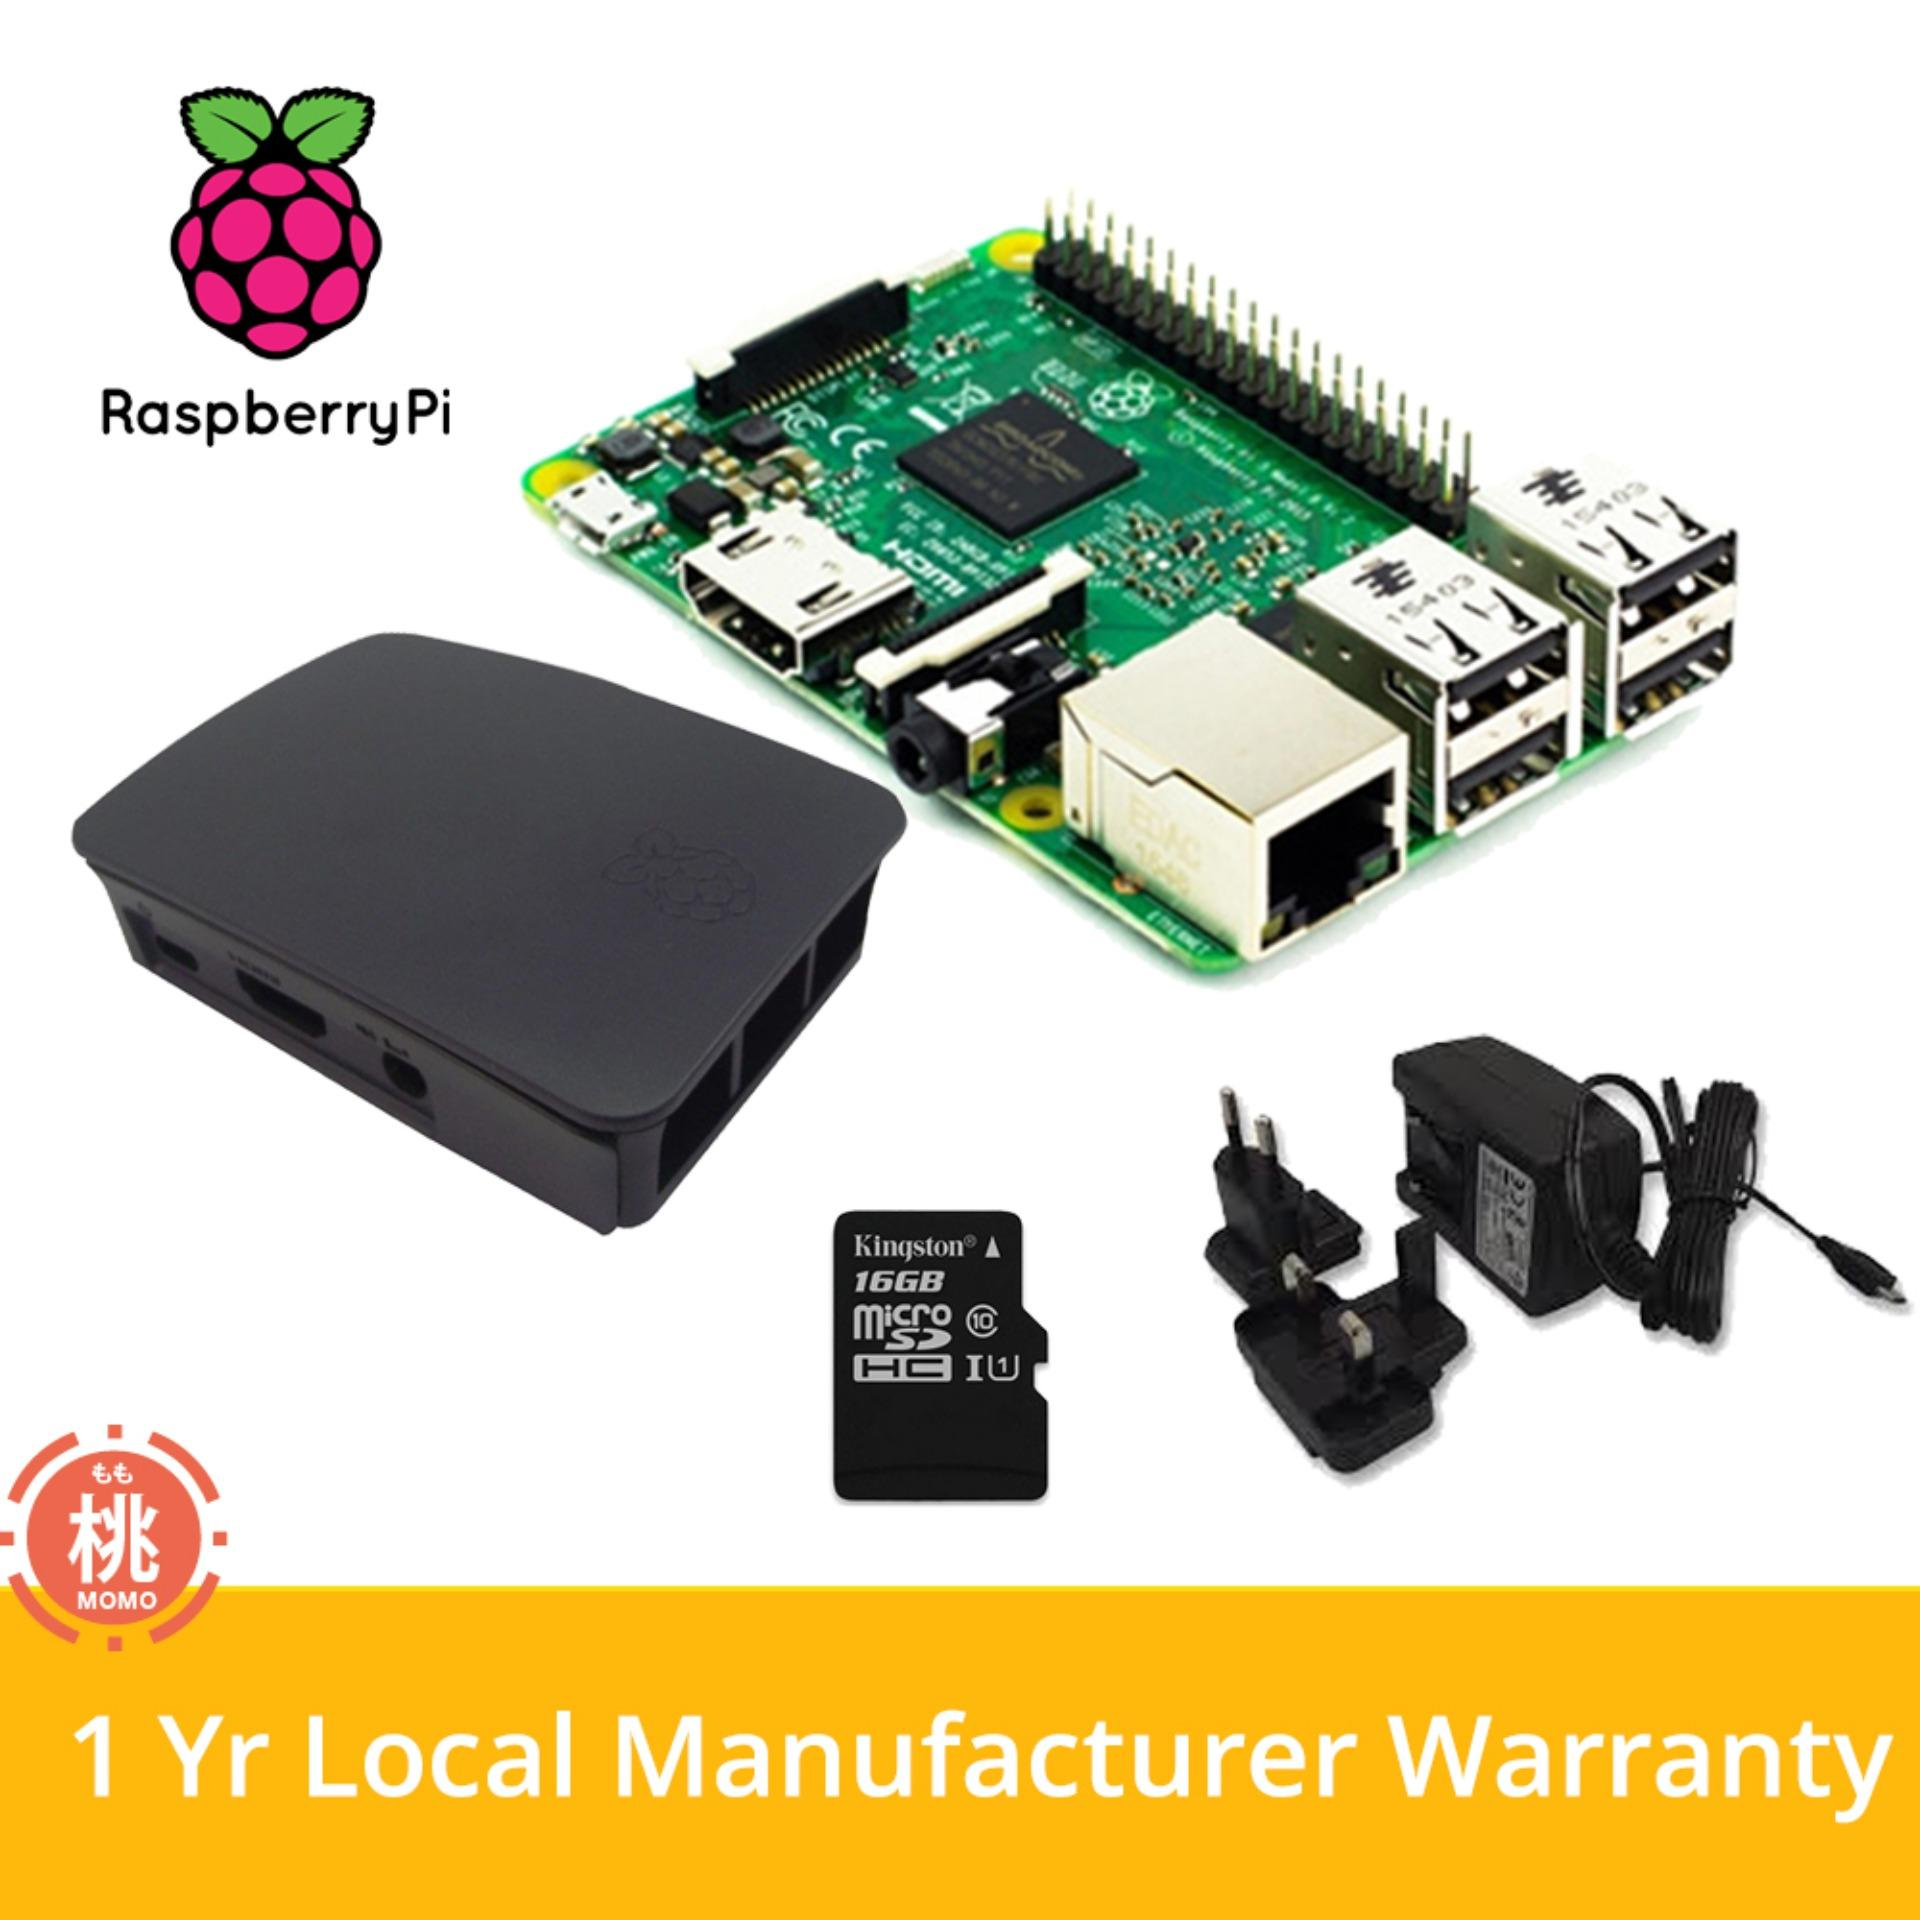 Raspberry Pi 3 B Starter Kit Discount Code